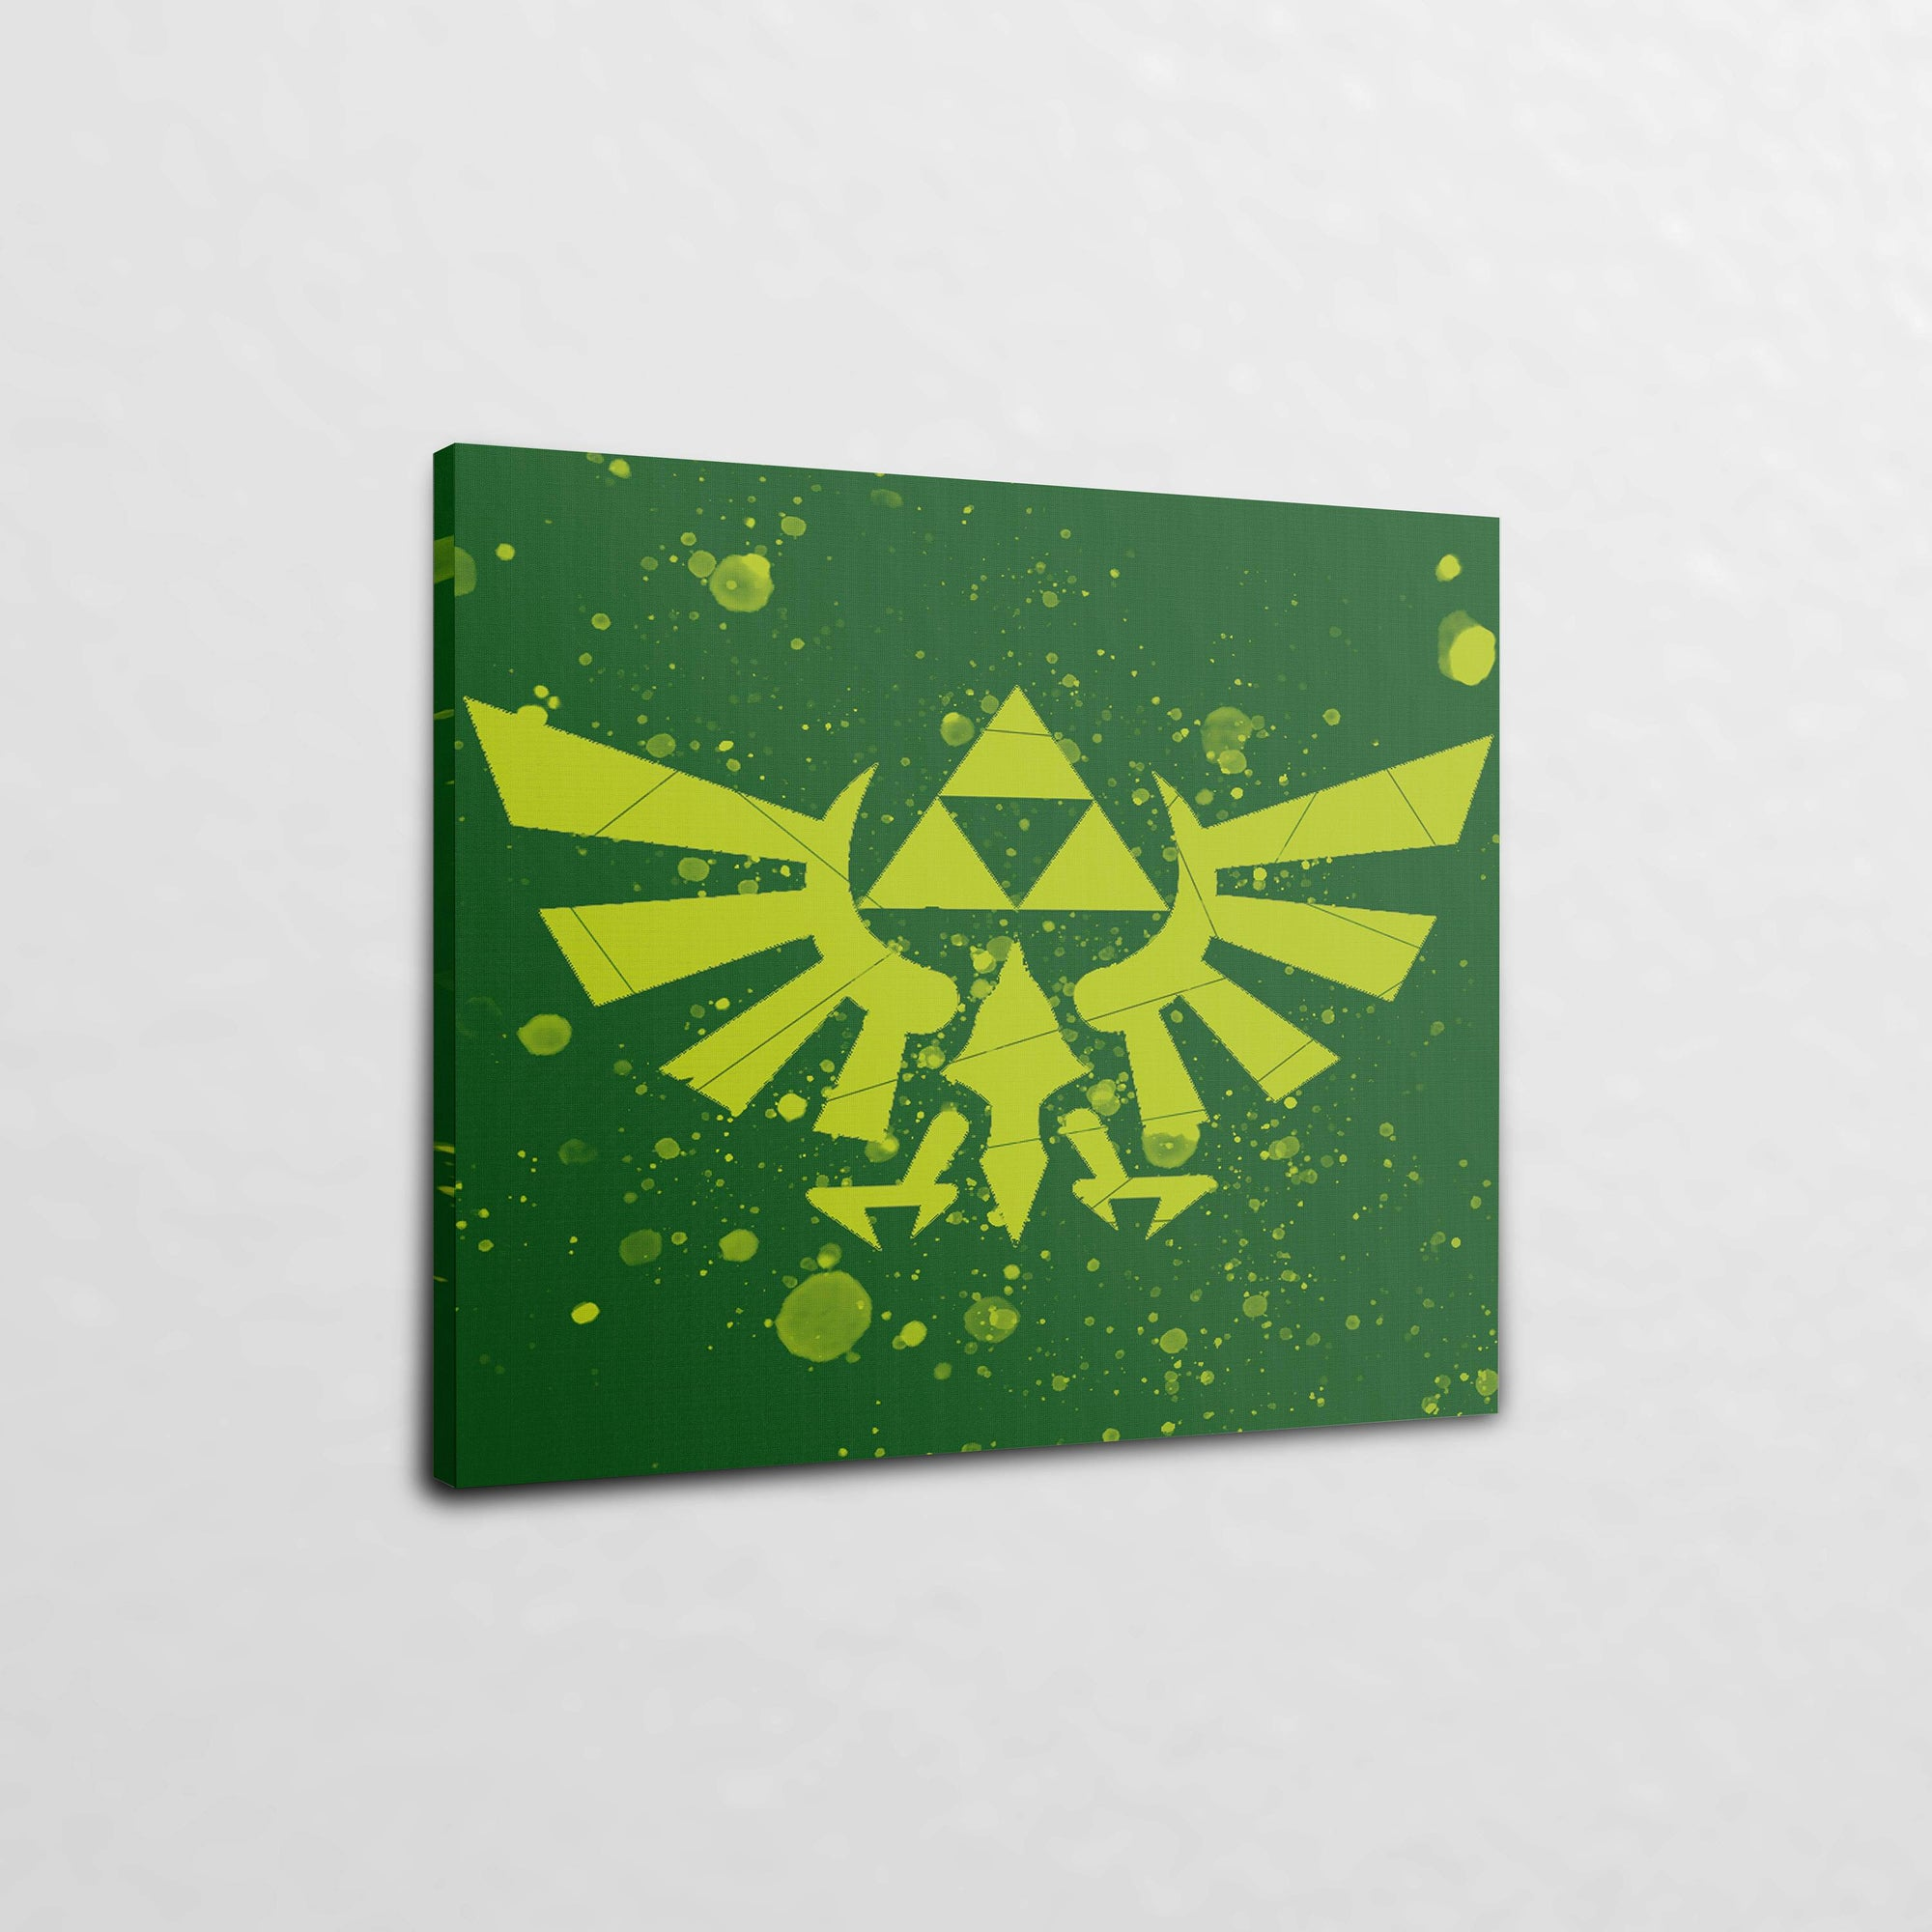 "The Legend of Zelda Triforce (24"" x 36"") - Canvas Wrap Print"